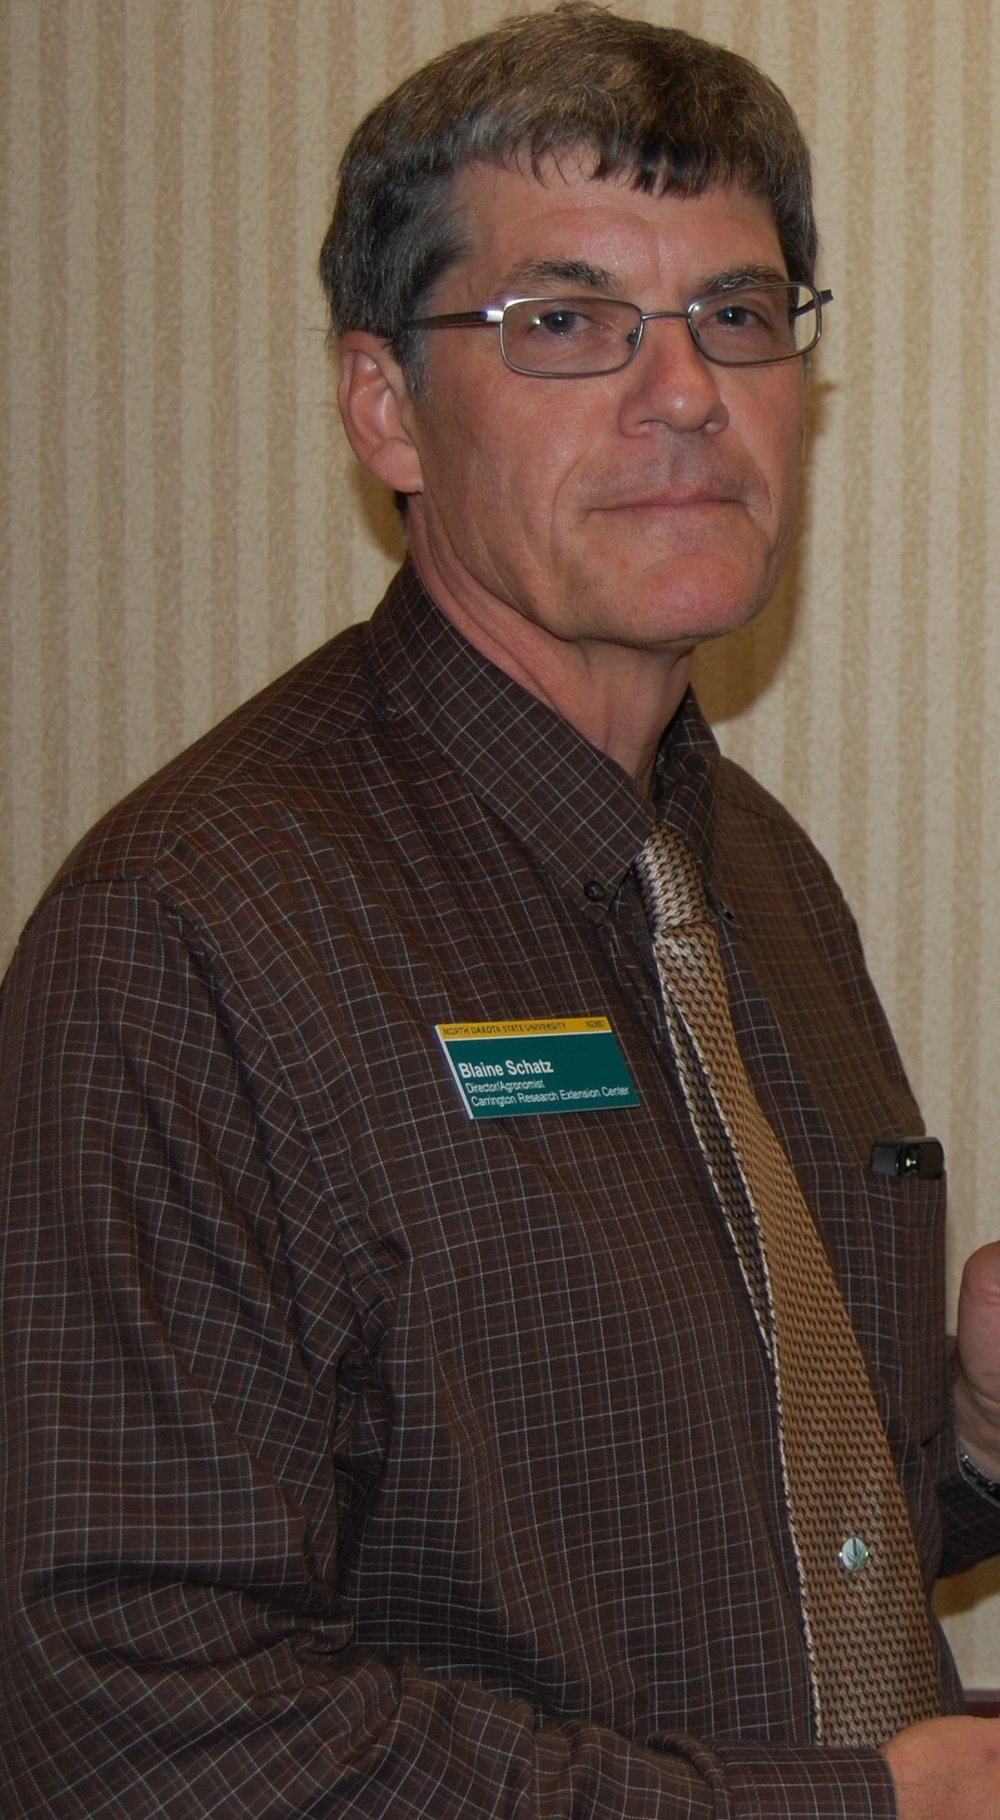 Blaine G. Schatz  - Blaine Schatz is the Director of the NDSU Carrington Research Extension Center. As director he is responsible for a department with diverse research programs involvingagronomy, soil science, plant pathology, precision agriculture and beef nutrition. The Carrington Center also includes a Foundation Seedstock program, a Fruit and Berry program and hosts a number of Extension Specialists. In addition to his administrative and leadership responsibilities he continues to be actively involved with a diverse research program as a Research Agronomist. His current research focus is on evaluationof crop production inputs, crop management factors, crop cultivar evaluation and cereal disease control. Blaine joined the staff of the NDSU CREC in 1978 and served in technical positions first within the seedstocks and then agronomy research programs. In1985 he assumed the position of Research Agronomist and in 1996 was appointed Director of the CREC. He has an A.A.S. degree in Soil, Water, and Civil Engineering from the University of Minnesota Crookston. He received his Bachelors of Science and Masters of Science degrees in agronomy from North Dakota State University.